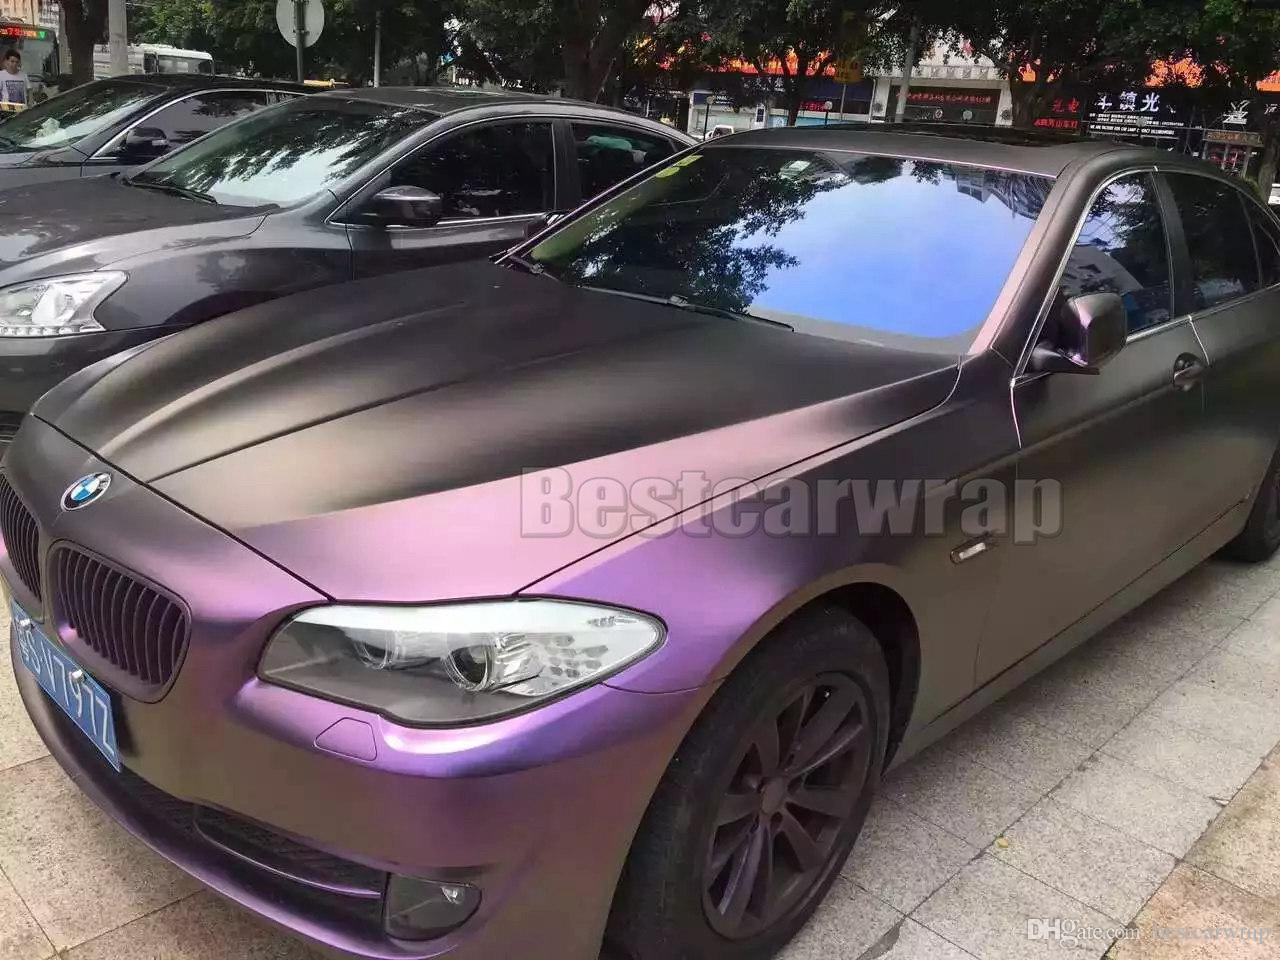 2019 Purple Wine Red Satin SHIFT Chameleon Vinyl Wrap Film With Air Bubble  Free Shiny Flip Flop FOR WHOLE Car Wrap Covering Skin 1.52 20M Roll From ... 98a7905c81b0